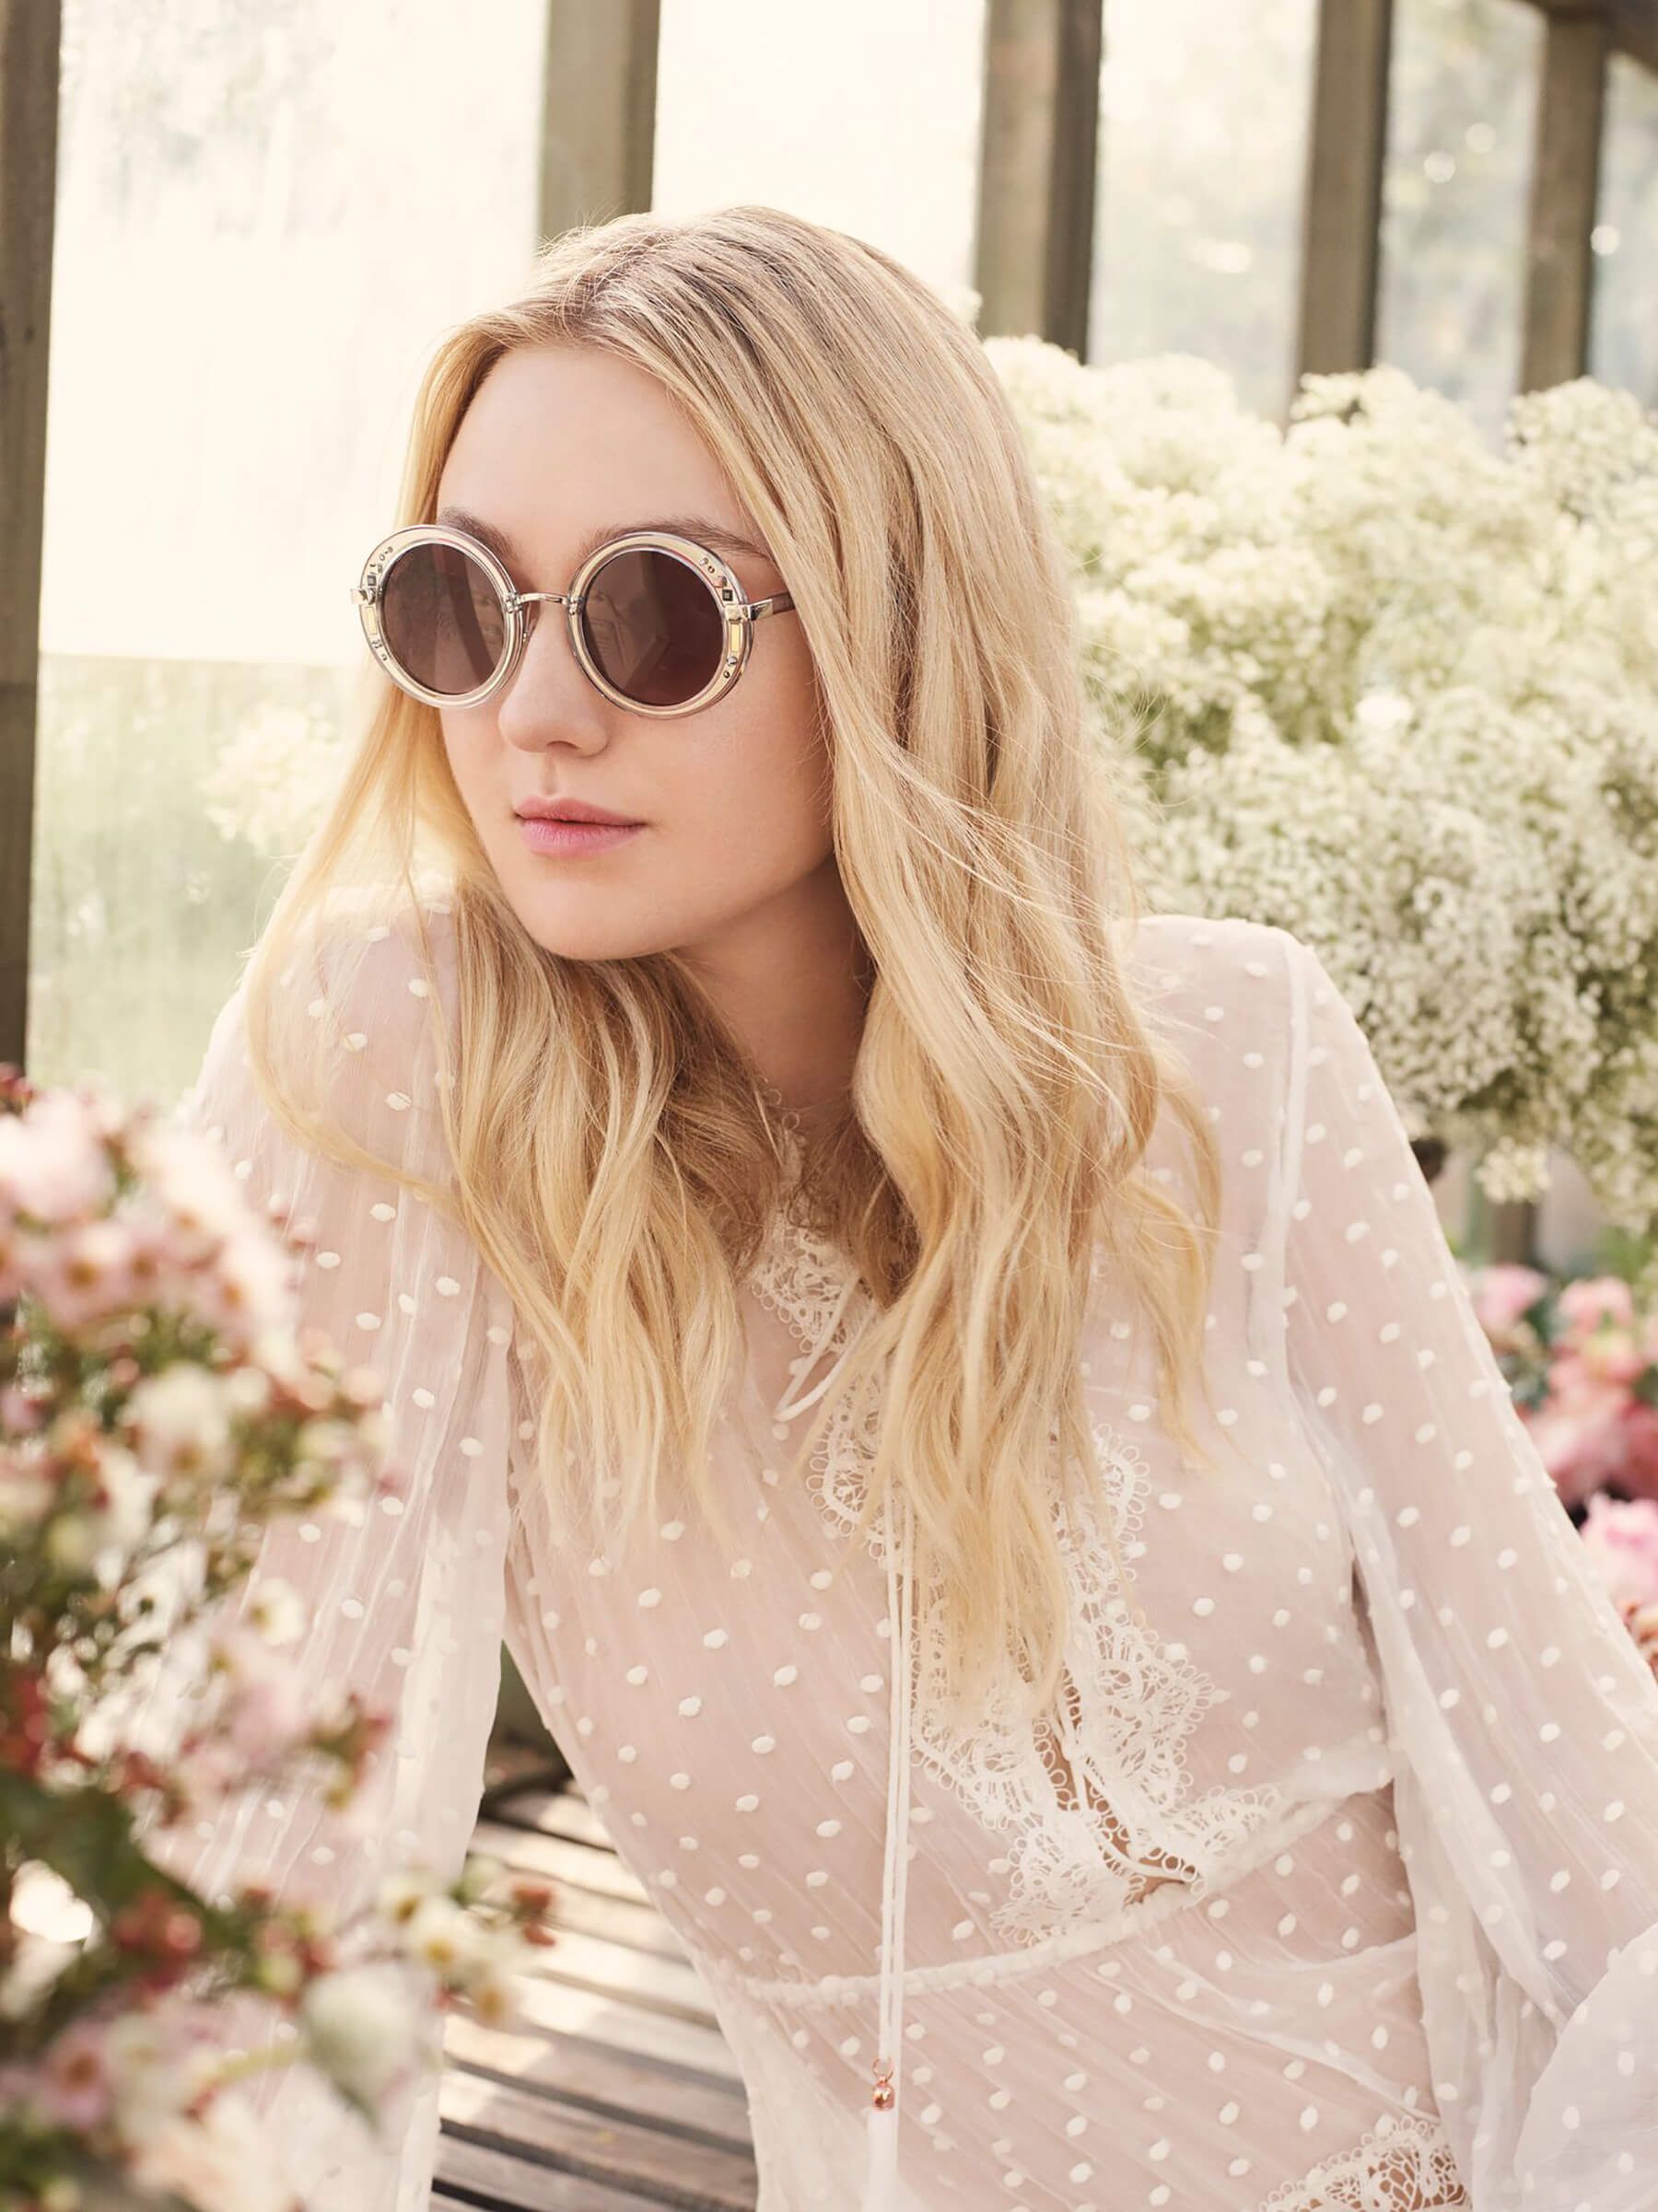 JIMMY CHOO SS17 STYLE DIARY DAKOTA FANNING WEARING THE GEM SUNGLASSES_preview.jpeg